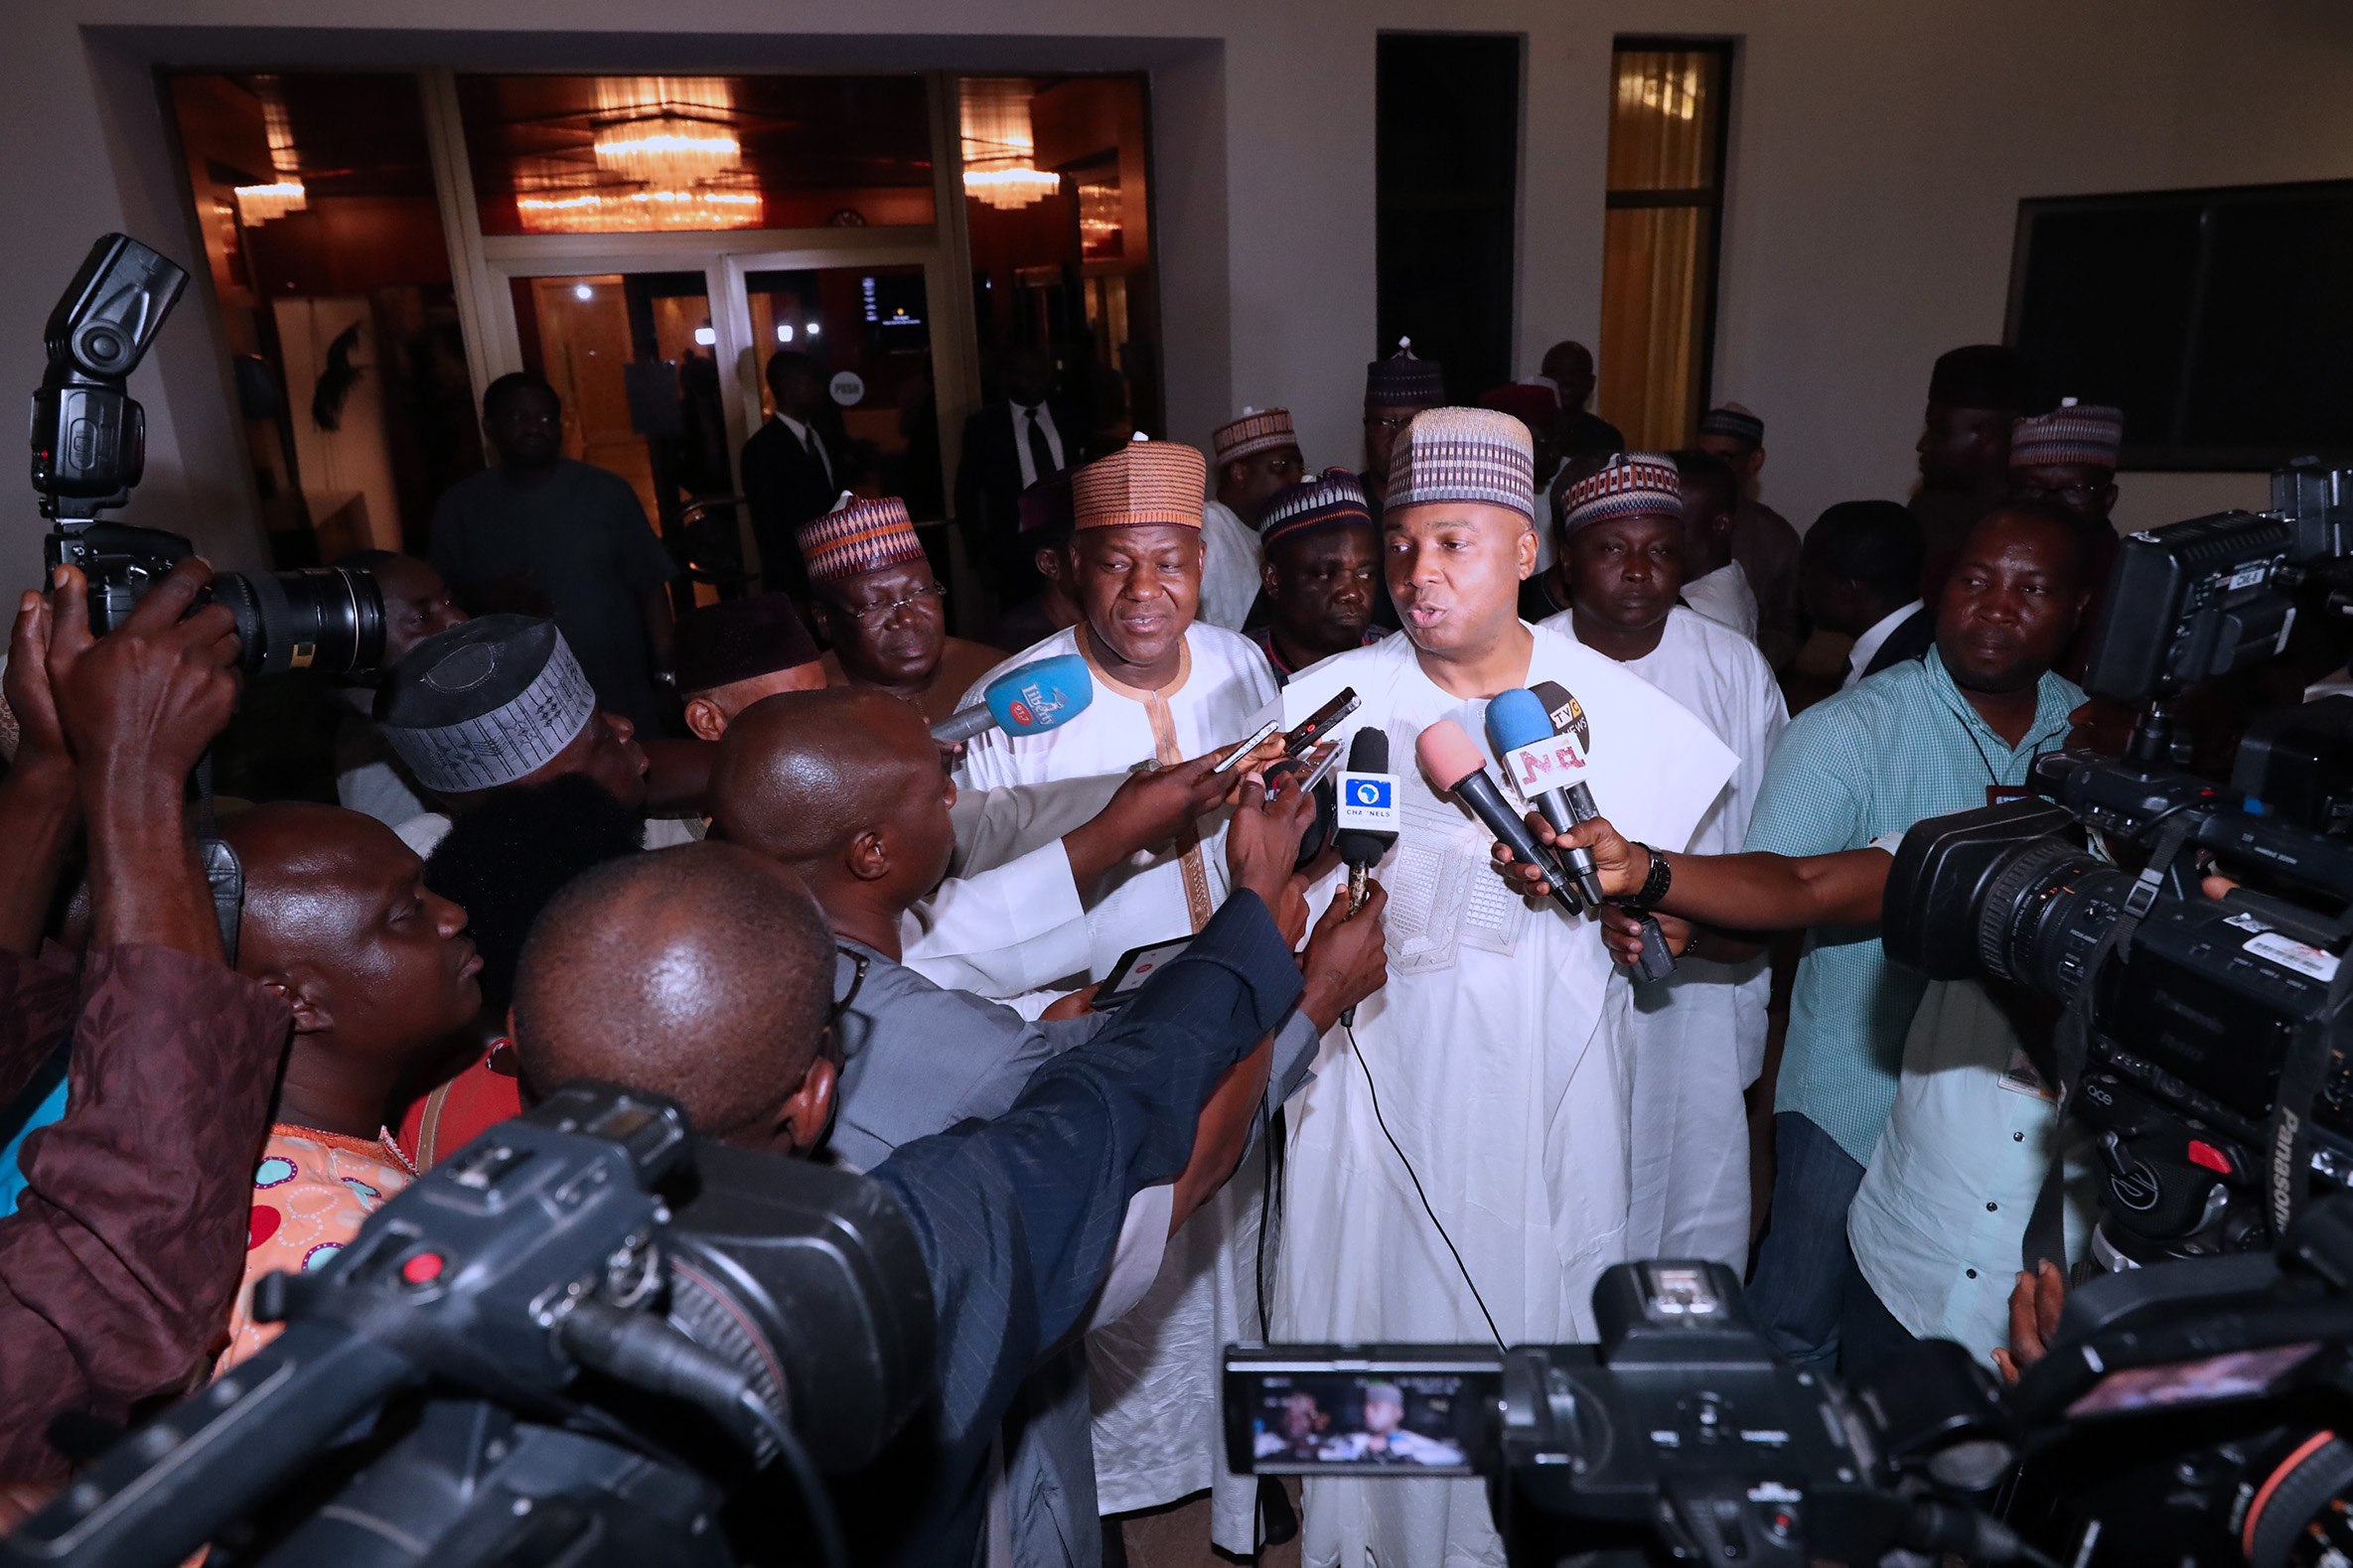 PRESIDENT BUHARI MEETING WITH NASS EXECUTIVES 10; President of the Senate Dr Abubakar Bukola Saraki, Speaker Rt Hon Yakubu Dogara, and others brief press after the meeting with the Leadership of National Assembly held at the Presidential Villa Abuja. Thursday night. MARCH 15 2018